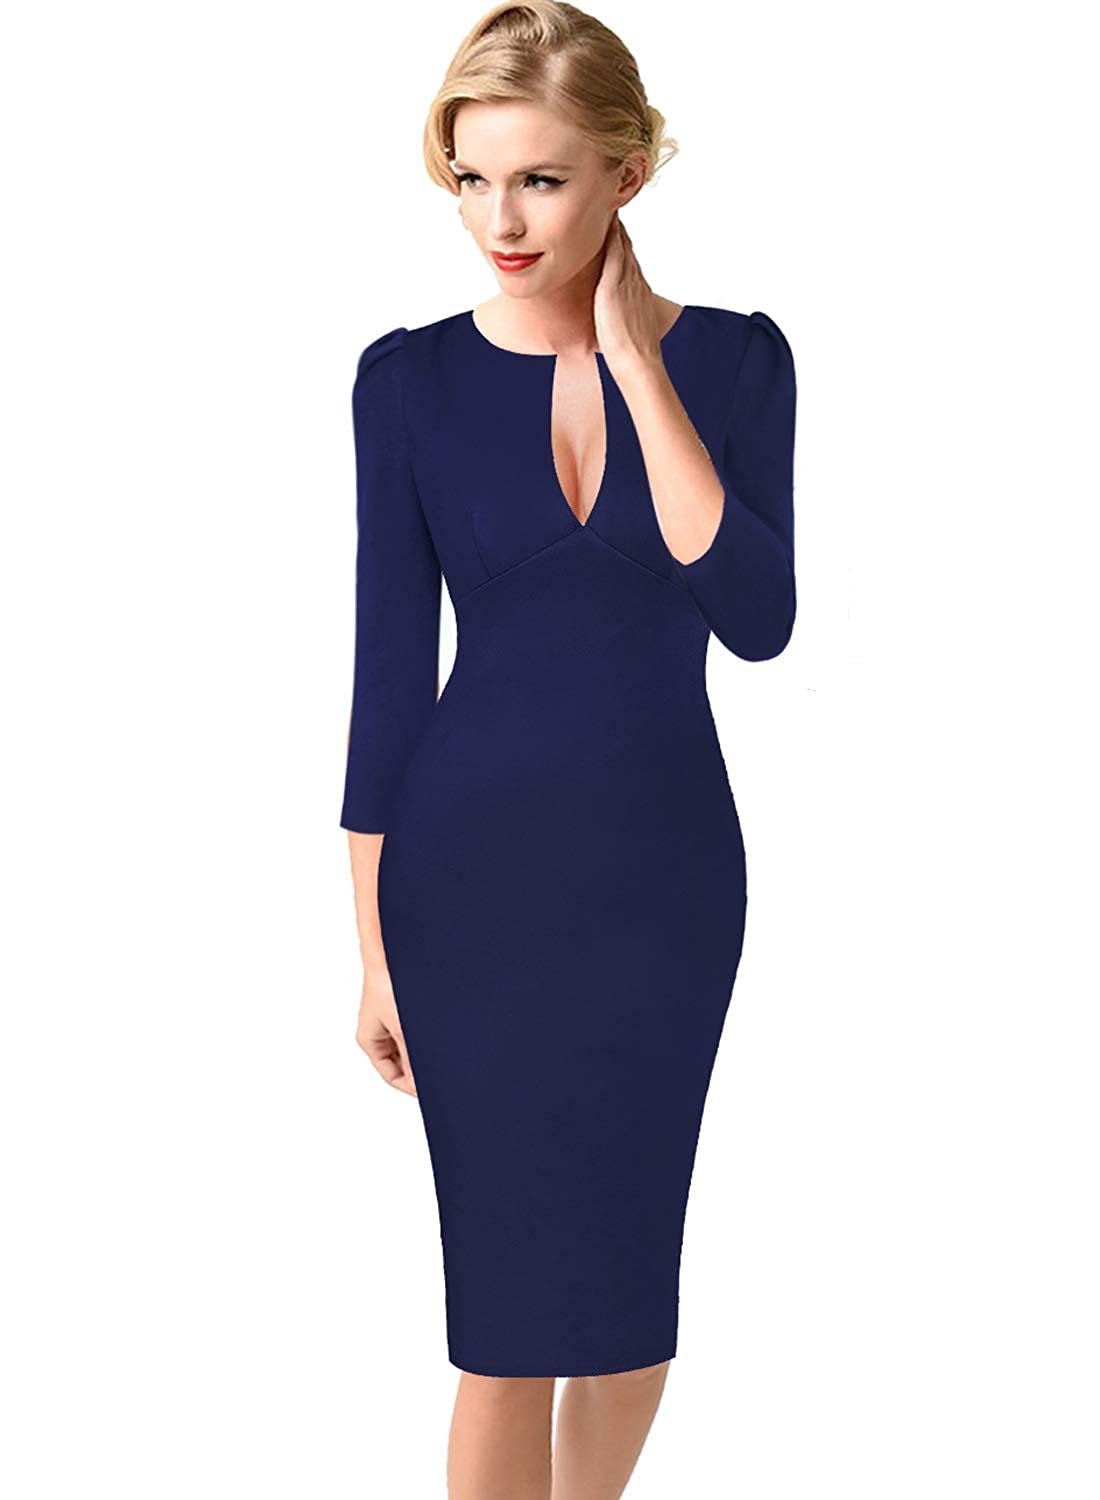 Dark Navy bluee VfEmage Womens Sexy V Neck Party Cocktail Work Slim Fitted Pencil Bodycon Dress